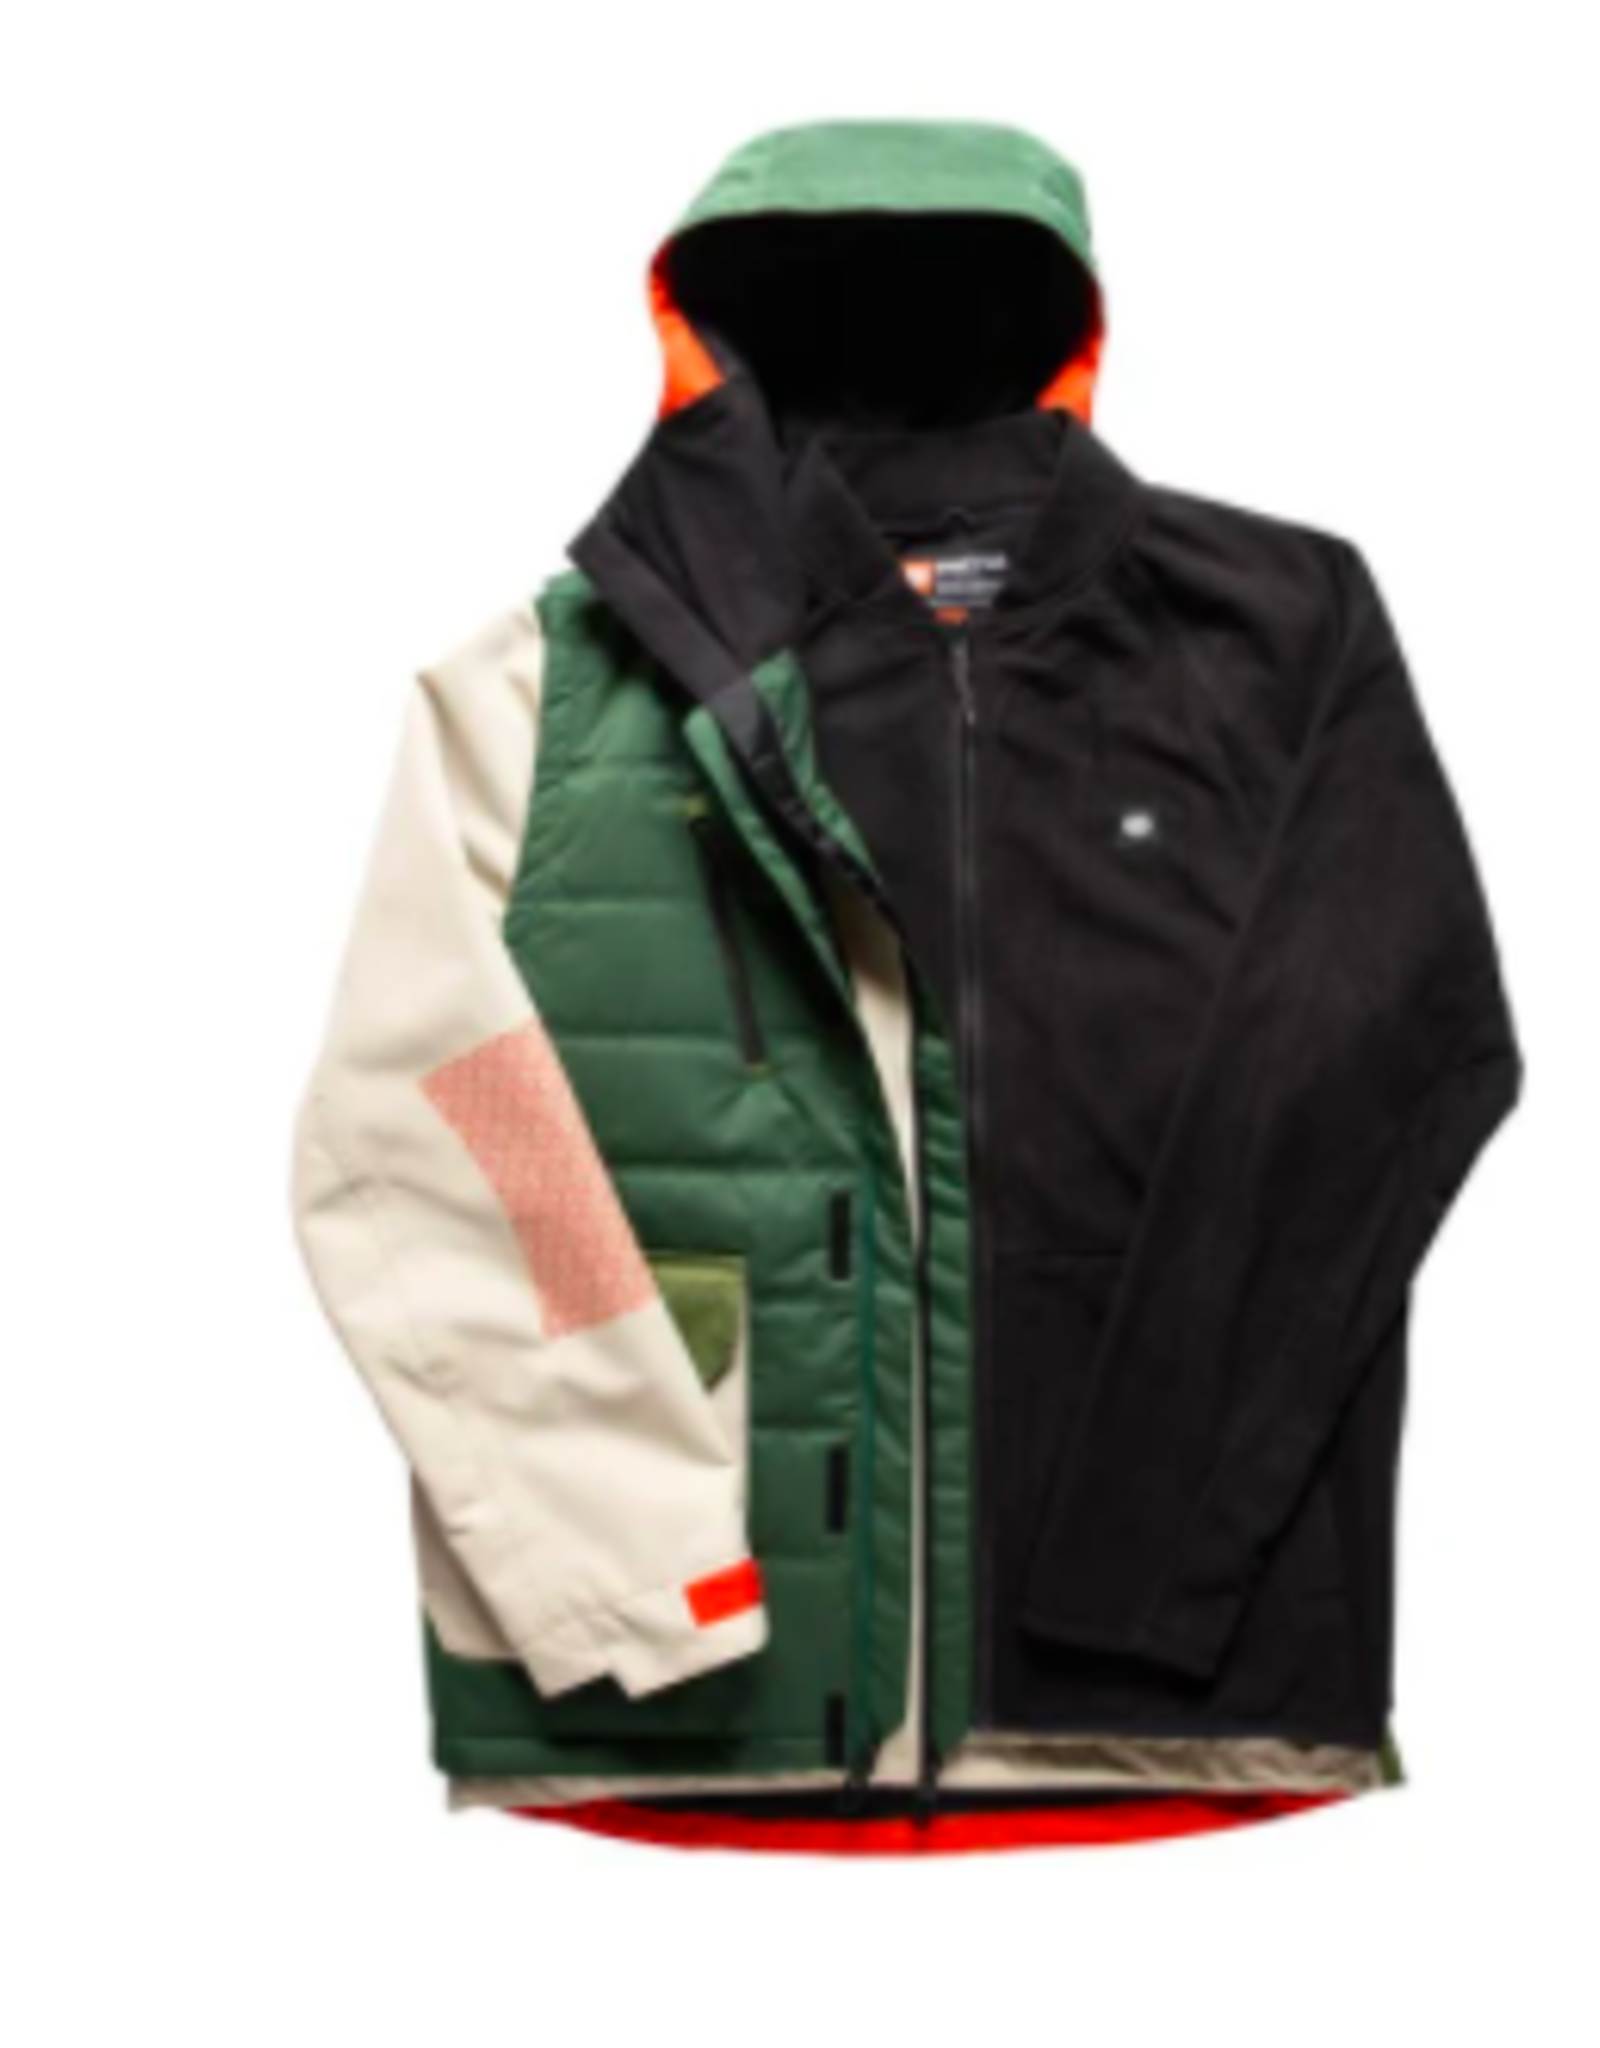 686 Men's Smarty 5-In-1 Complete Jacket Putty Colorblock 2022